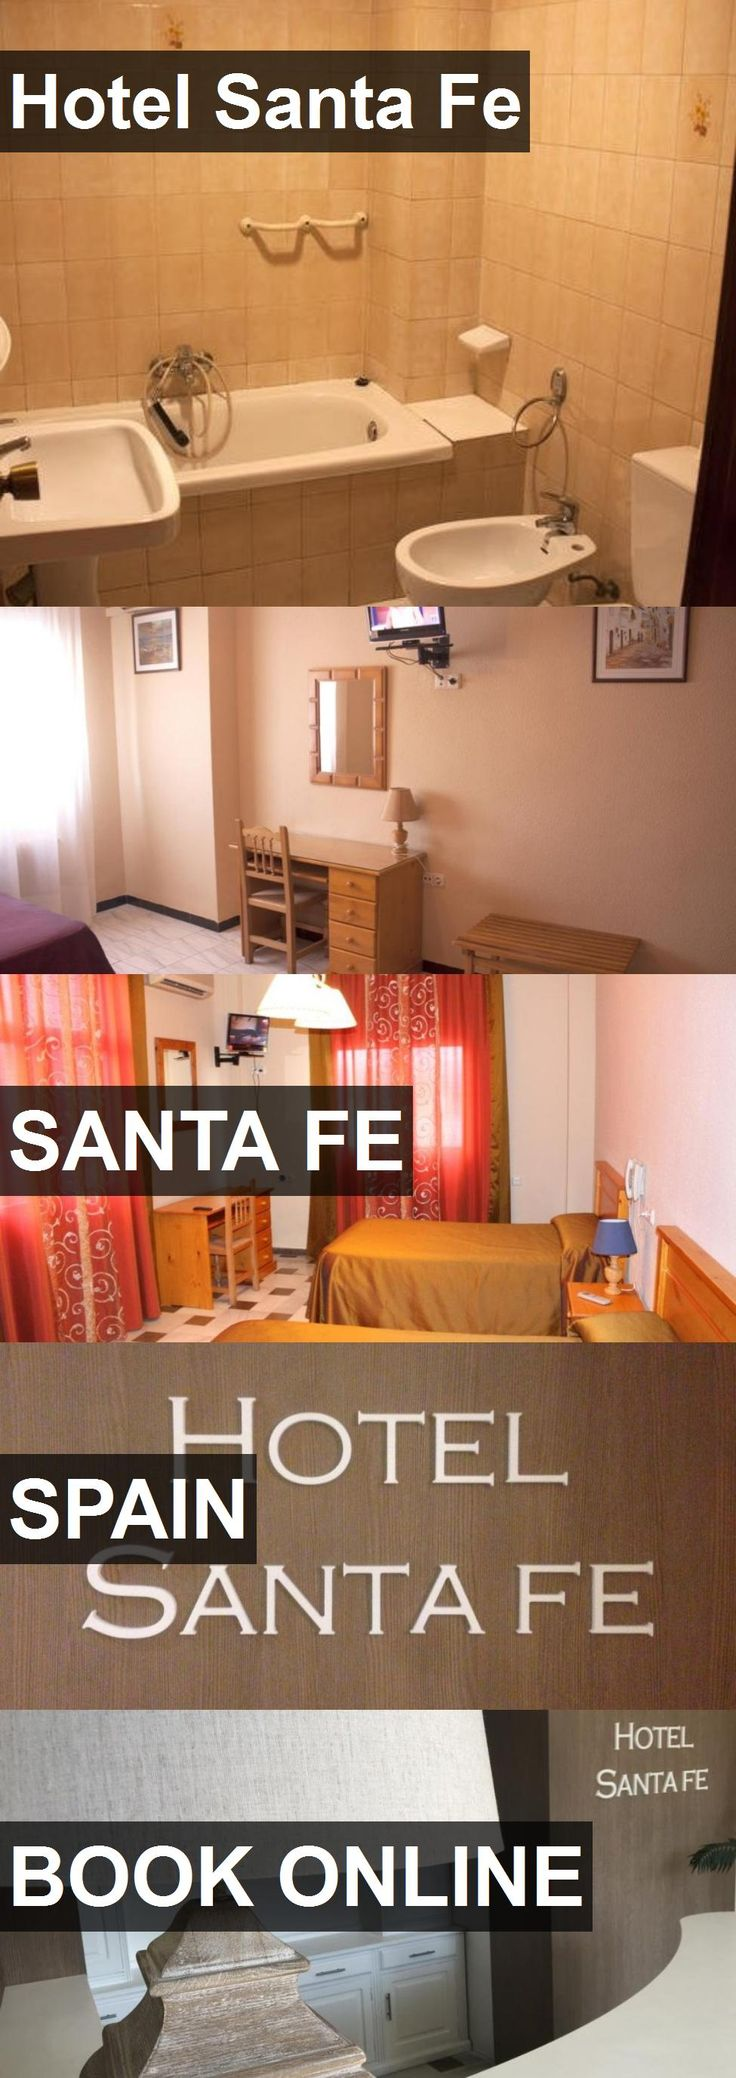 Hotel Hotel Santa Fe in Santa Fe, Spain. For more information, photos, reviews and best prices please follow the link. #Spain #SantaFe #HotelSantaFe #hotel #travel #vacation